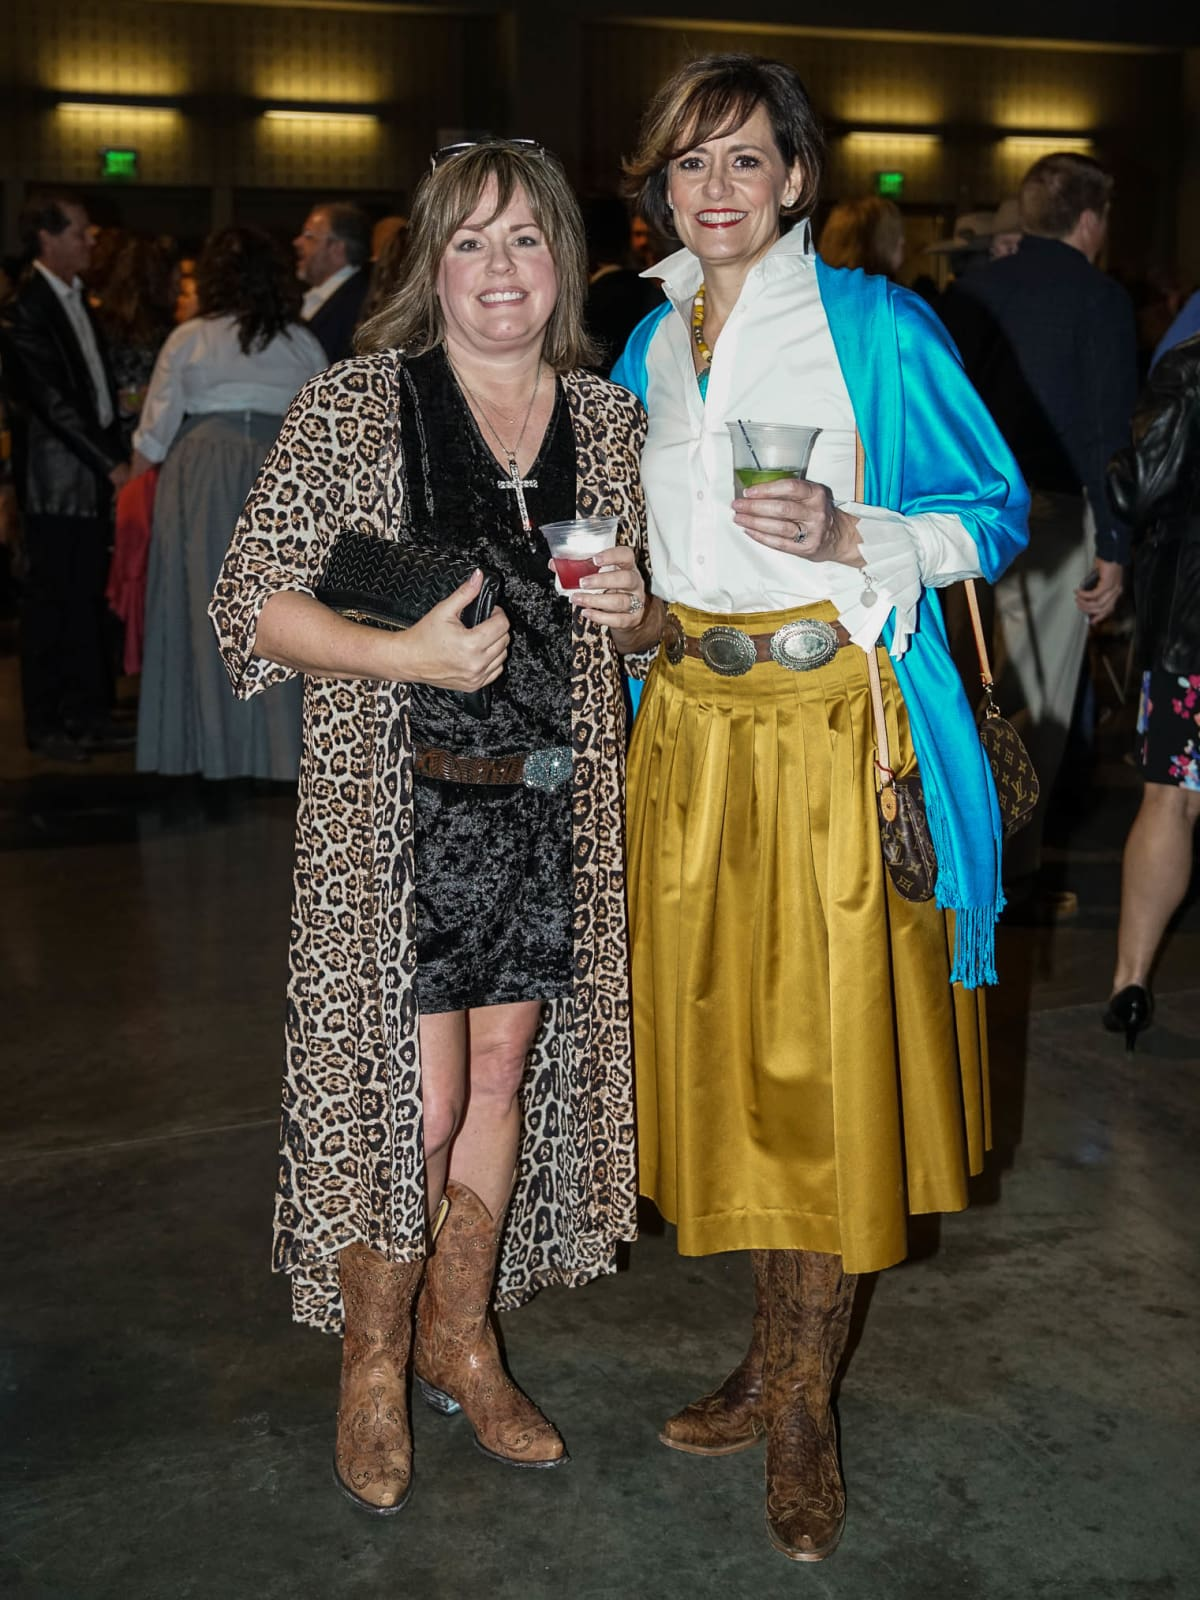 Rodeo Austin Guests Lasso Up Texas Chic Looks At 2018 Gala